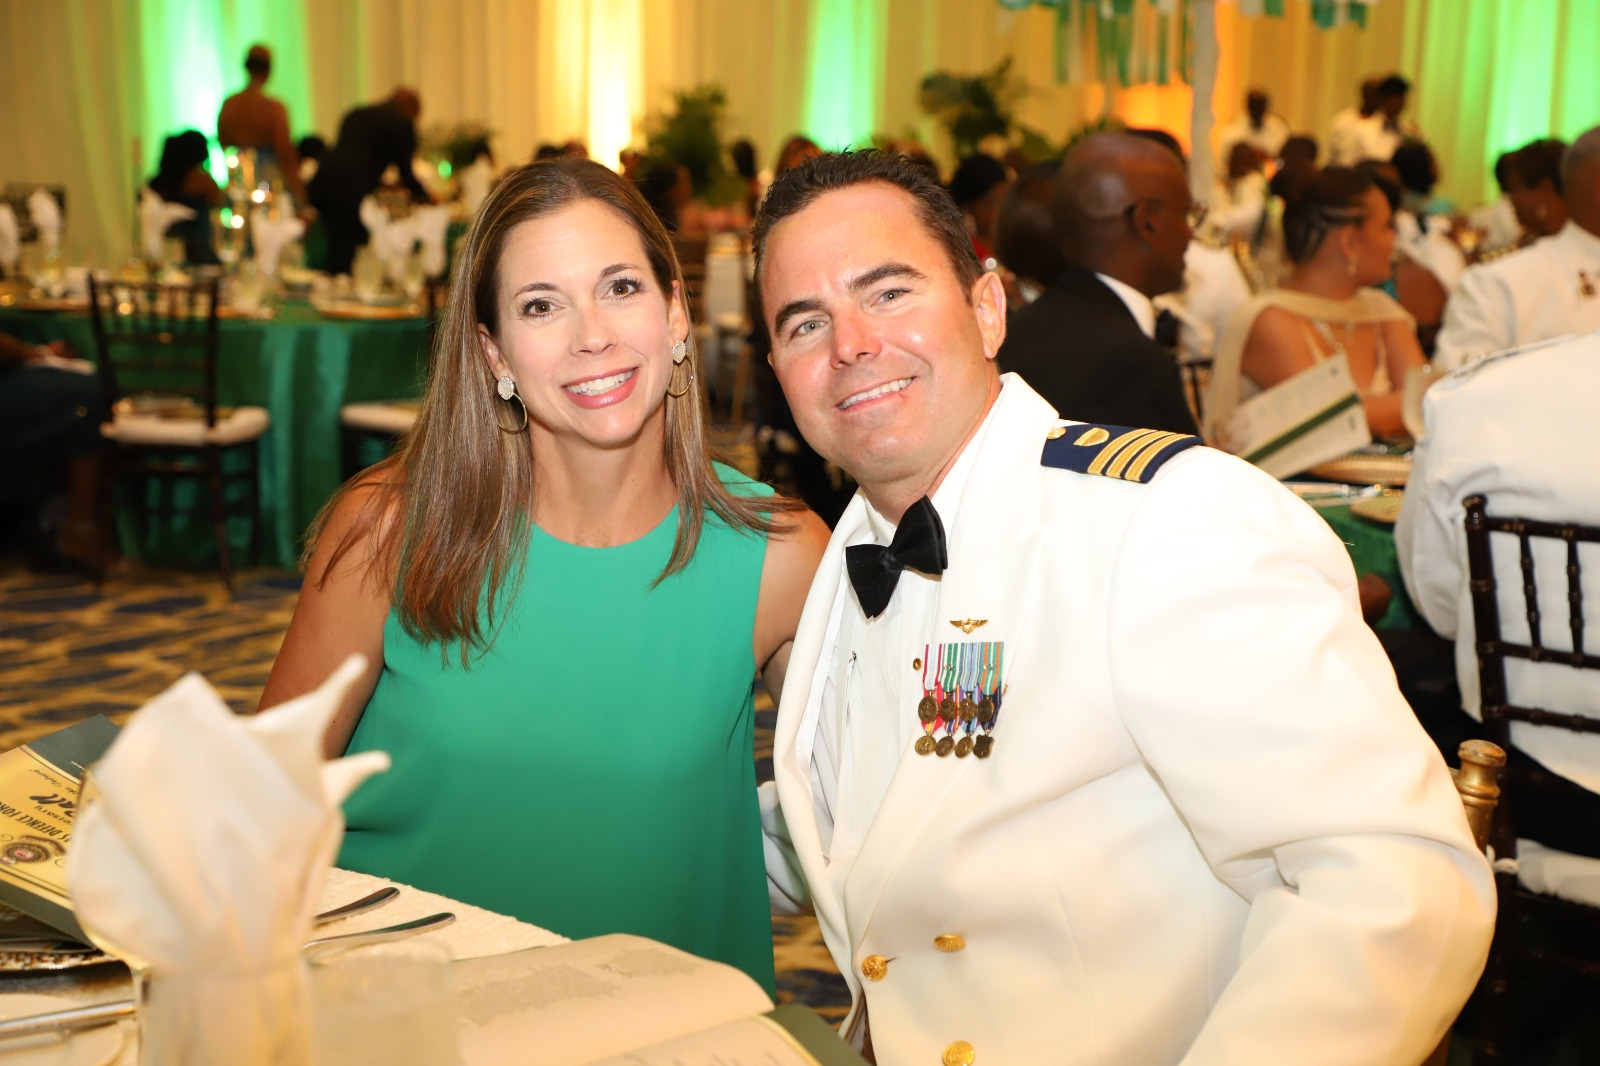 Commander Michael Benson and Mrs. Benson at the Annual Military Ball on June 1st